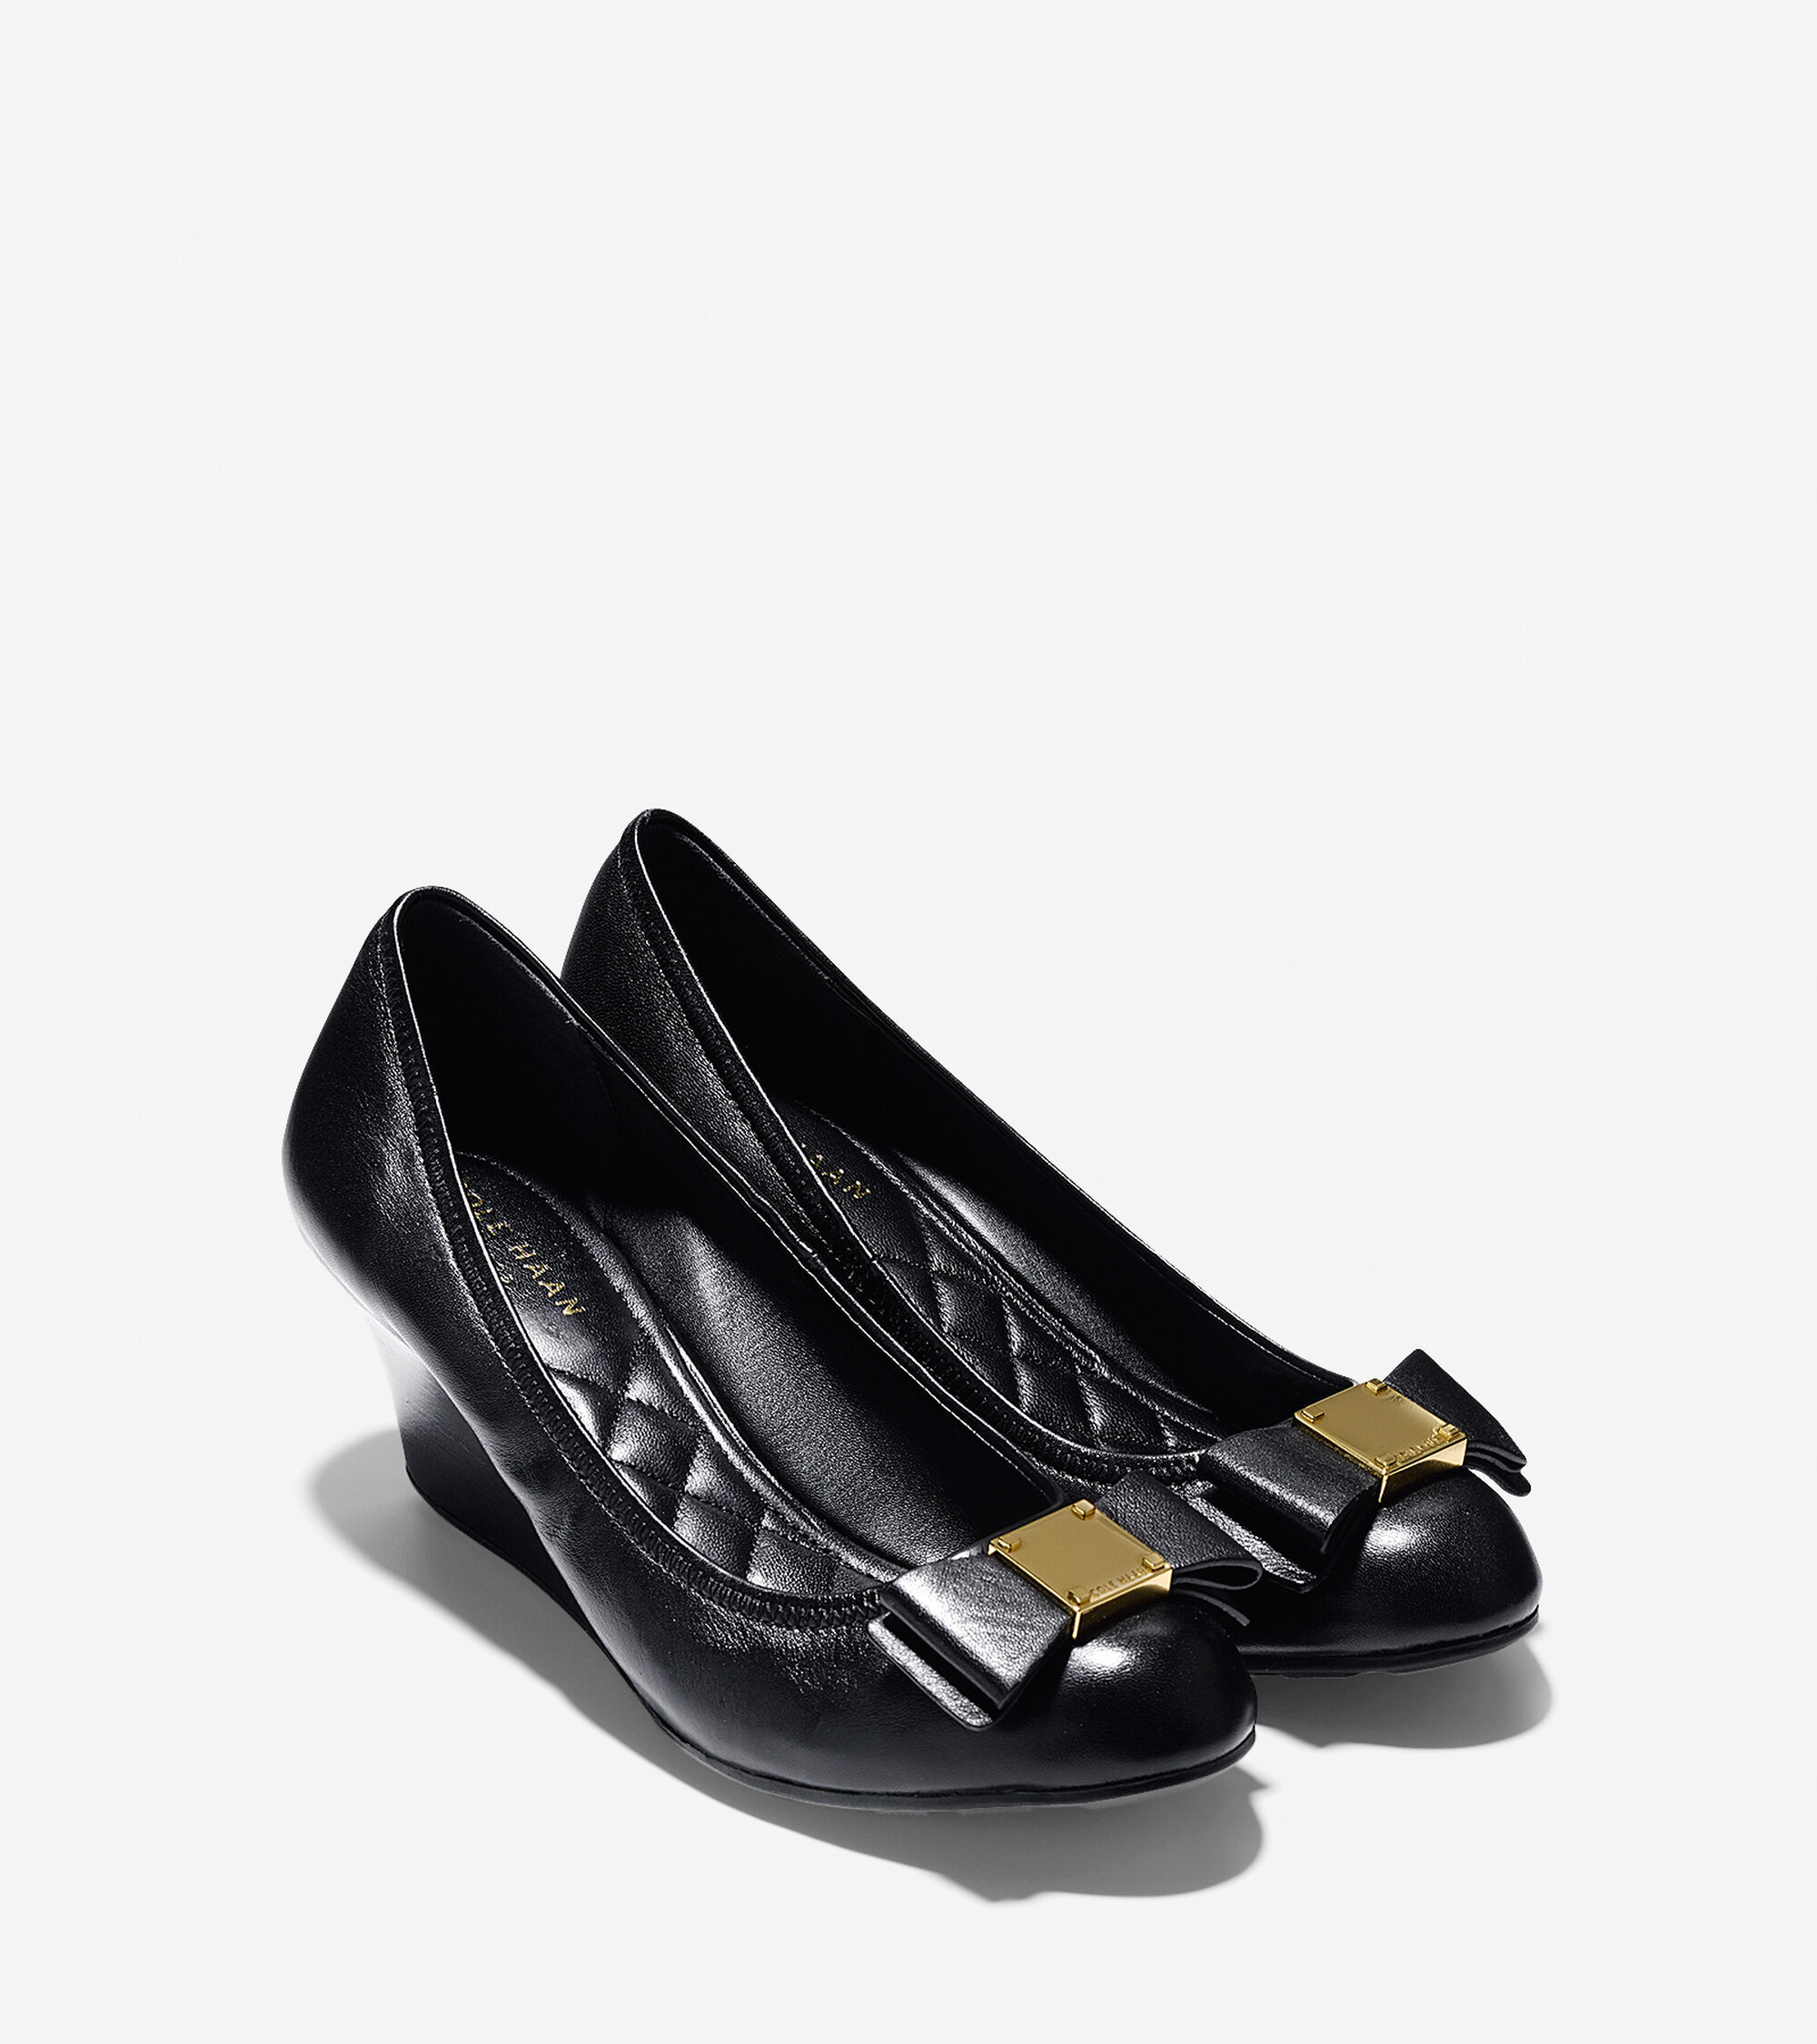 6dd04232187 Women s Tali Grand Bow Wedges 65mm in Black